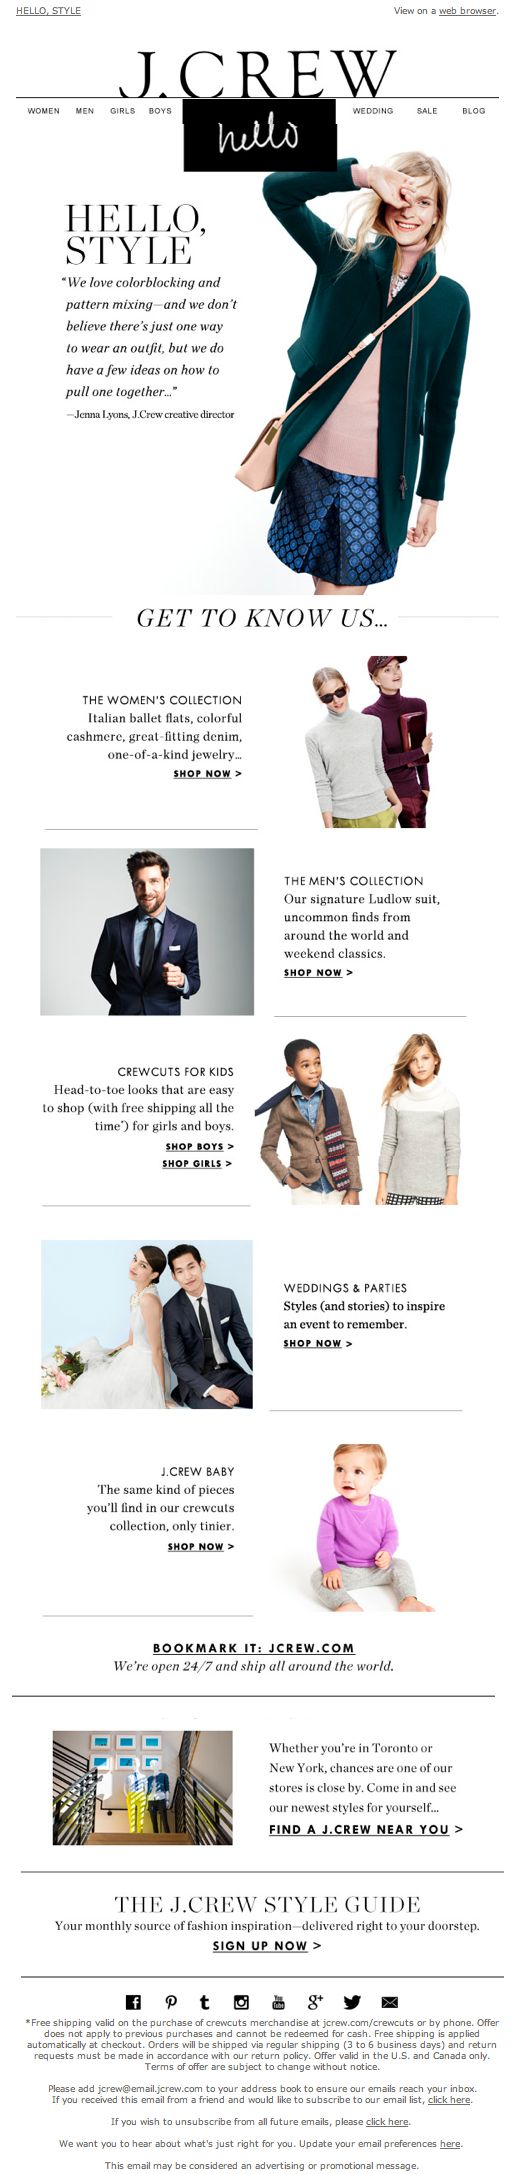 J. Crew  | welcome | WelcomeEmails | emailmarketing | email | newsletter | welcome newsletter | welcome email | WelcomeEmail | relationship emails | emailDesign